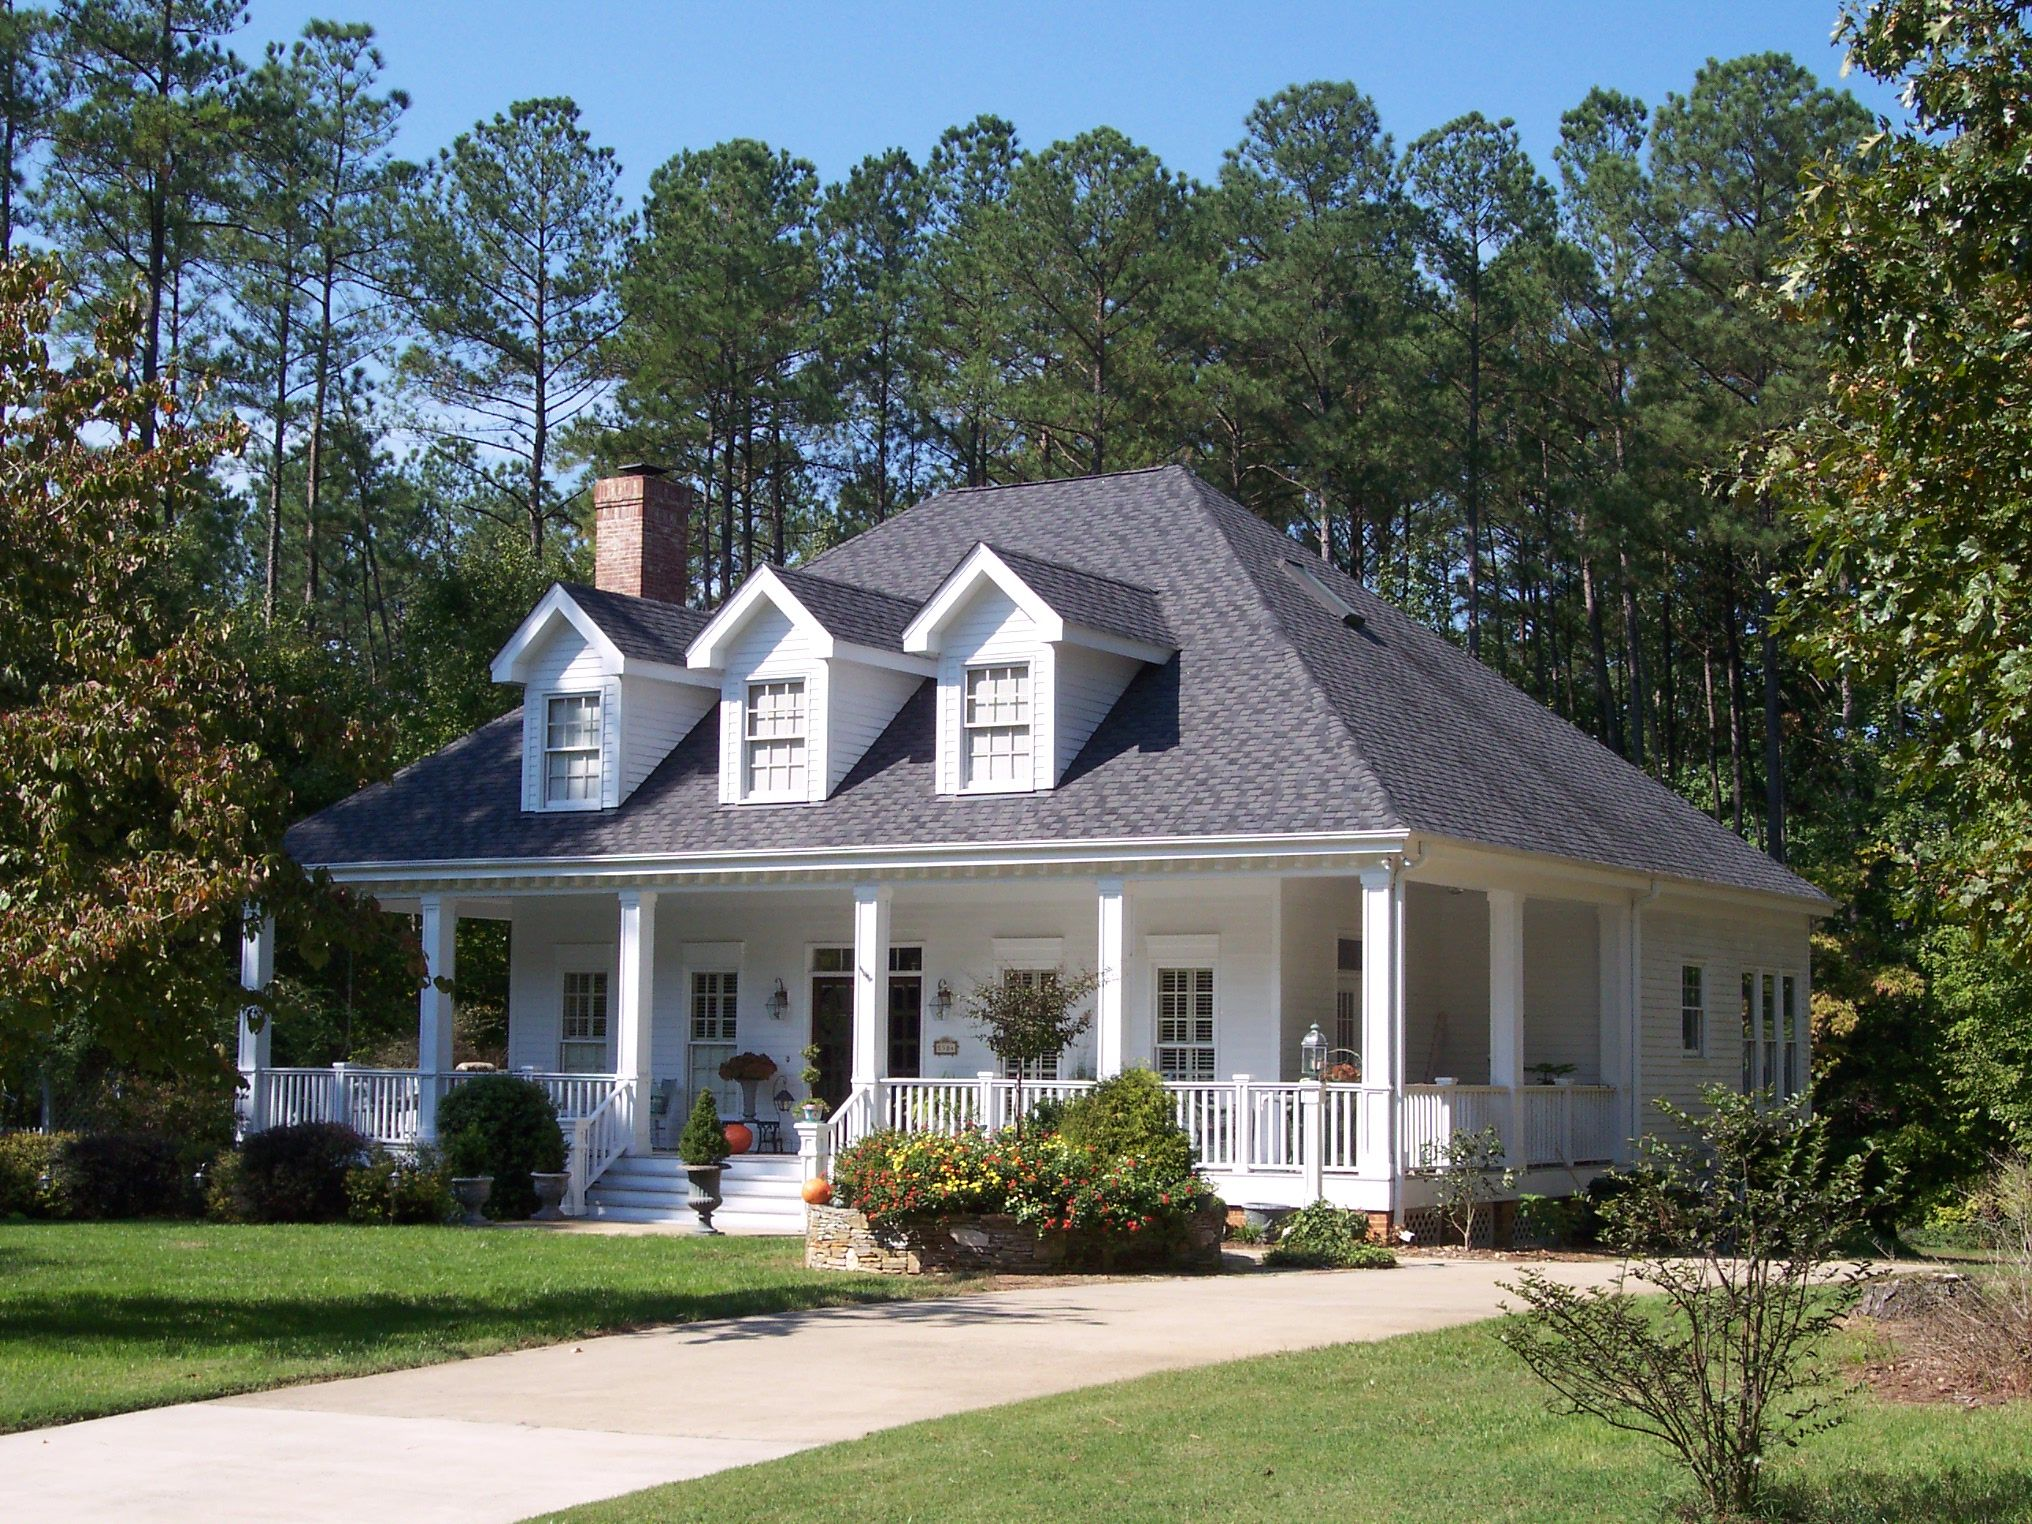 Plan 5669tr Adorable Southern Home Plan Southern House Plans Southern Style Homes House Plans